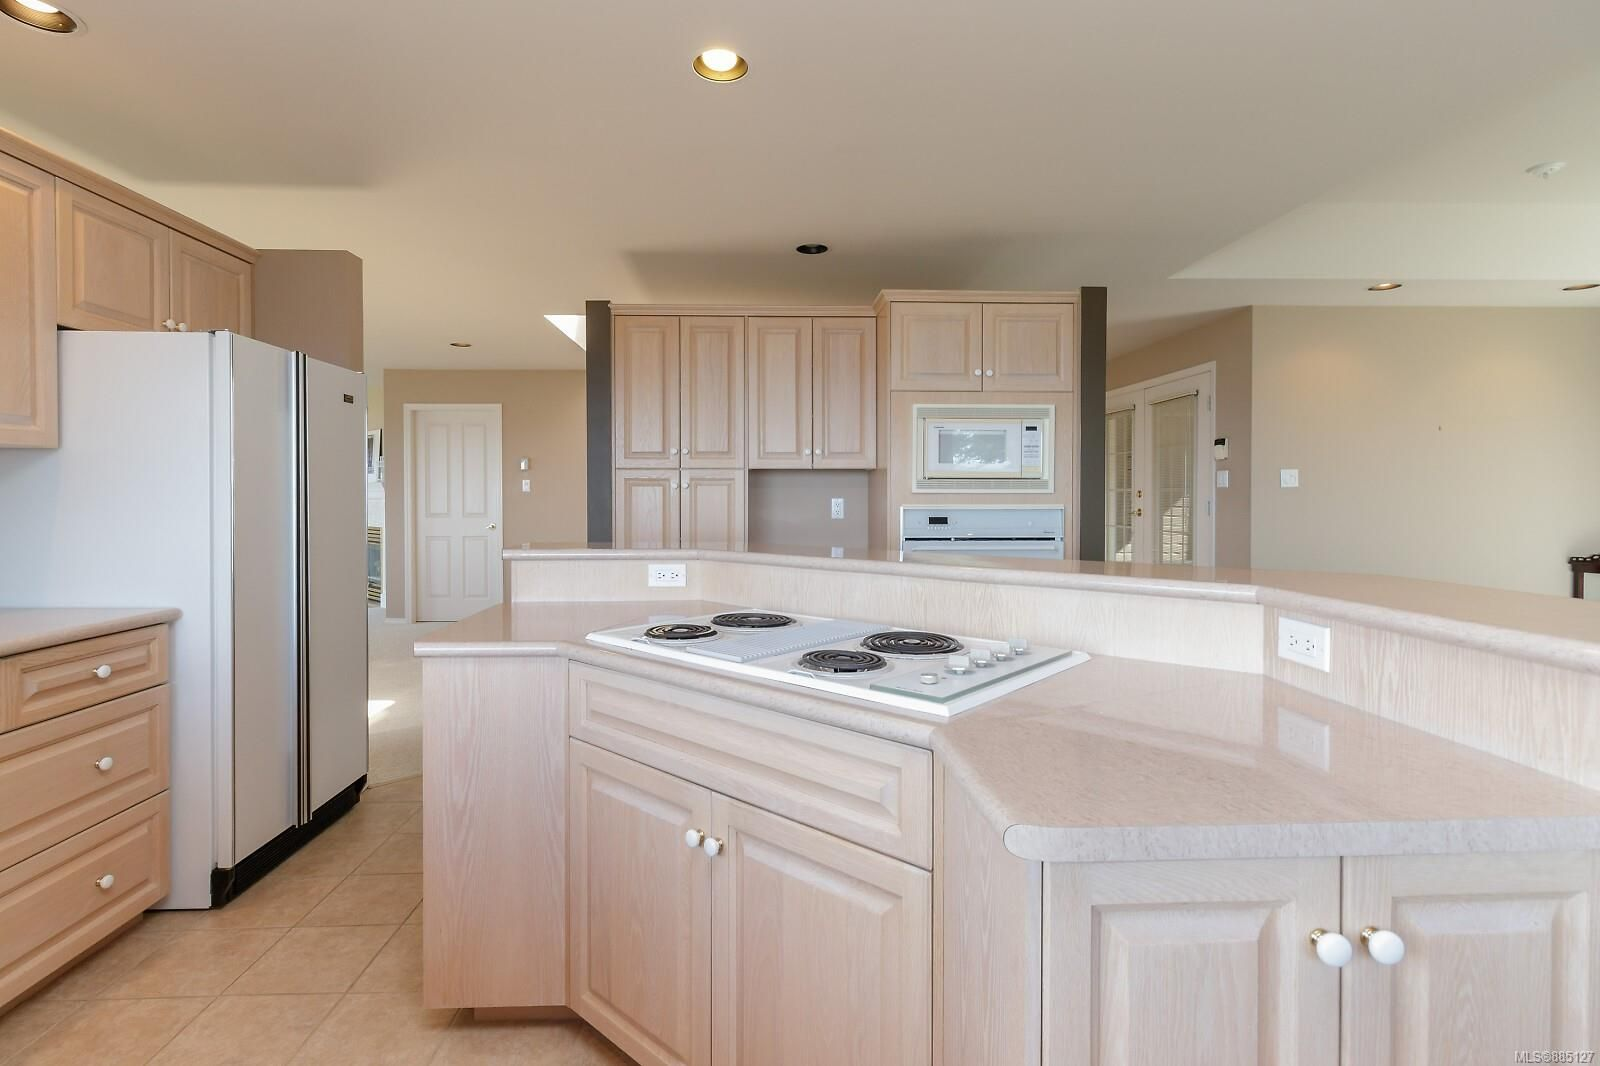 Photo 27: Photos: 26 529 Johnstone Rd in : PQ French Creek Row/Townhouse for sale (Parksville/Qualicum)  : MLS®# 885127